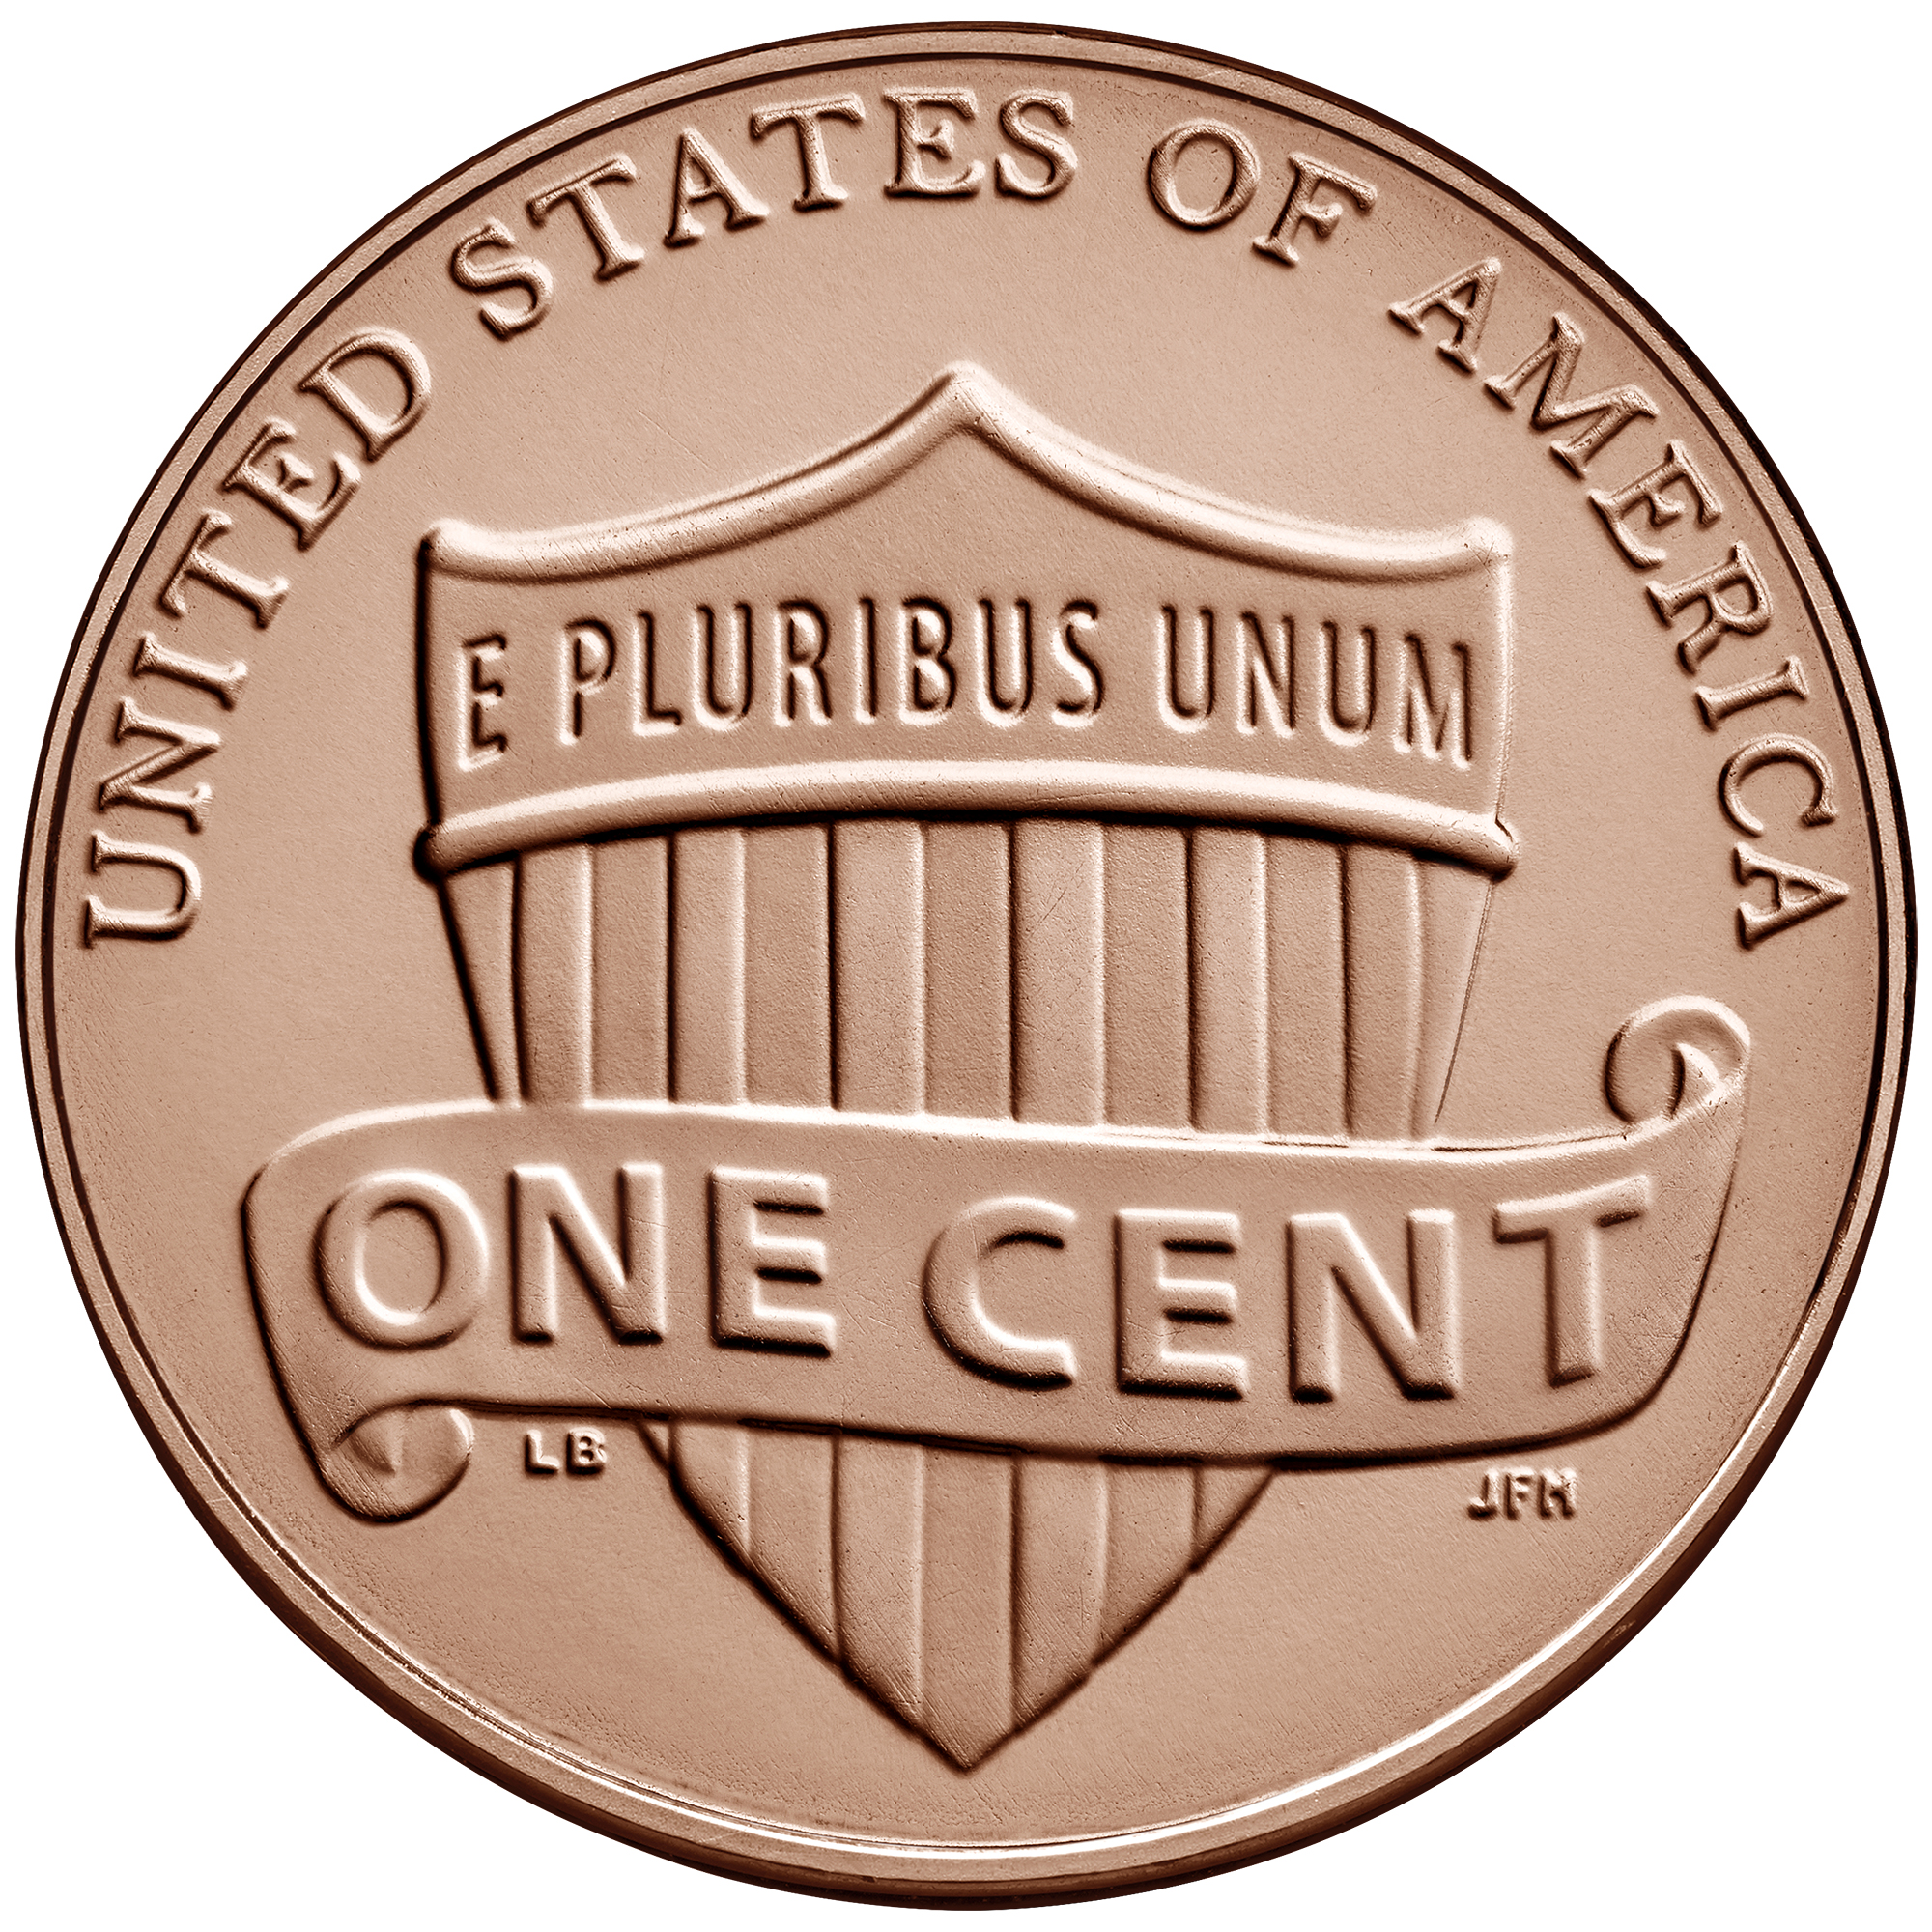 One Cent Coin Penny Us Mint For Kids